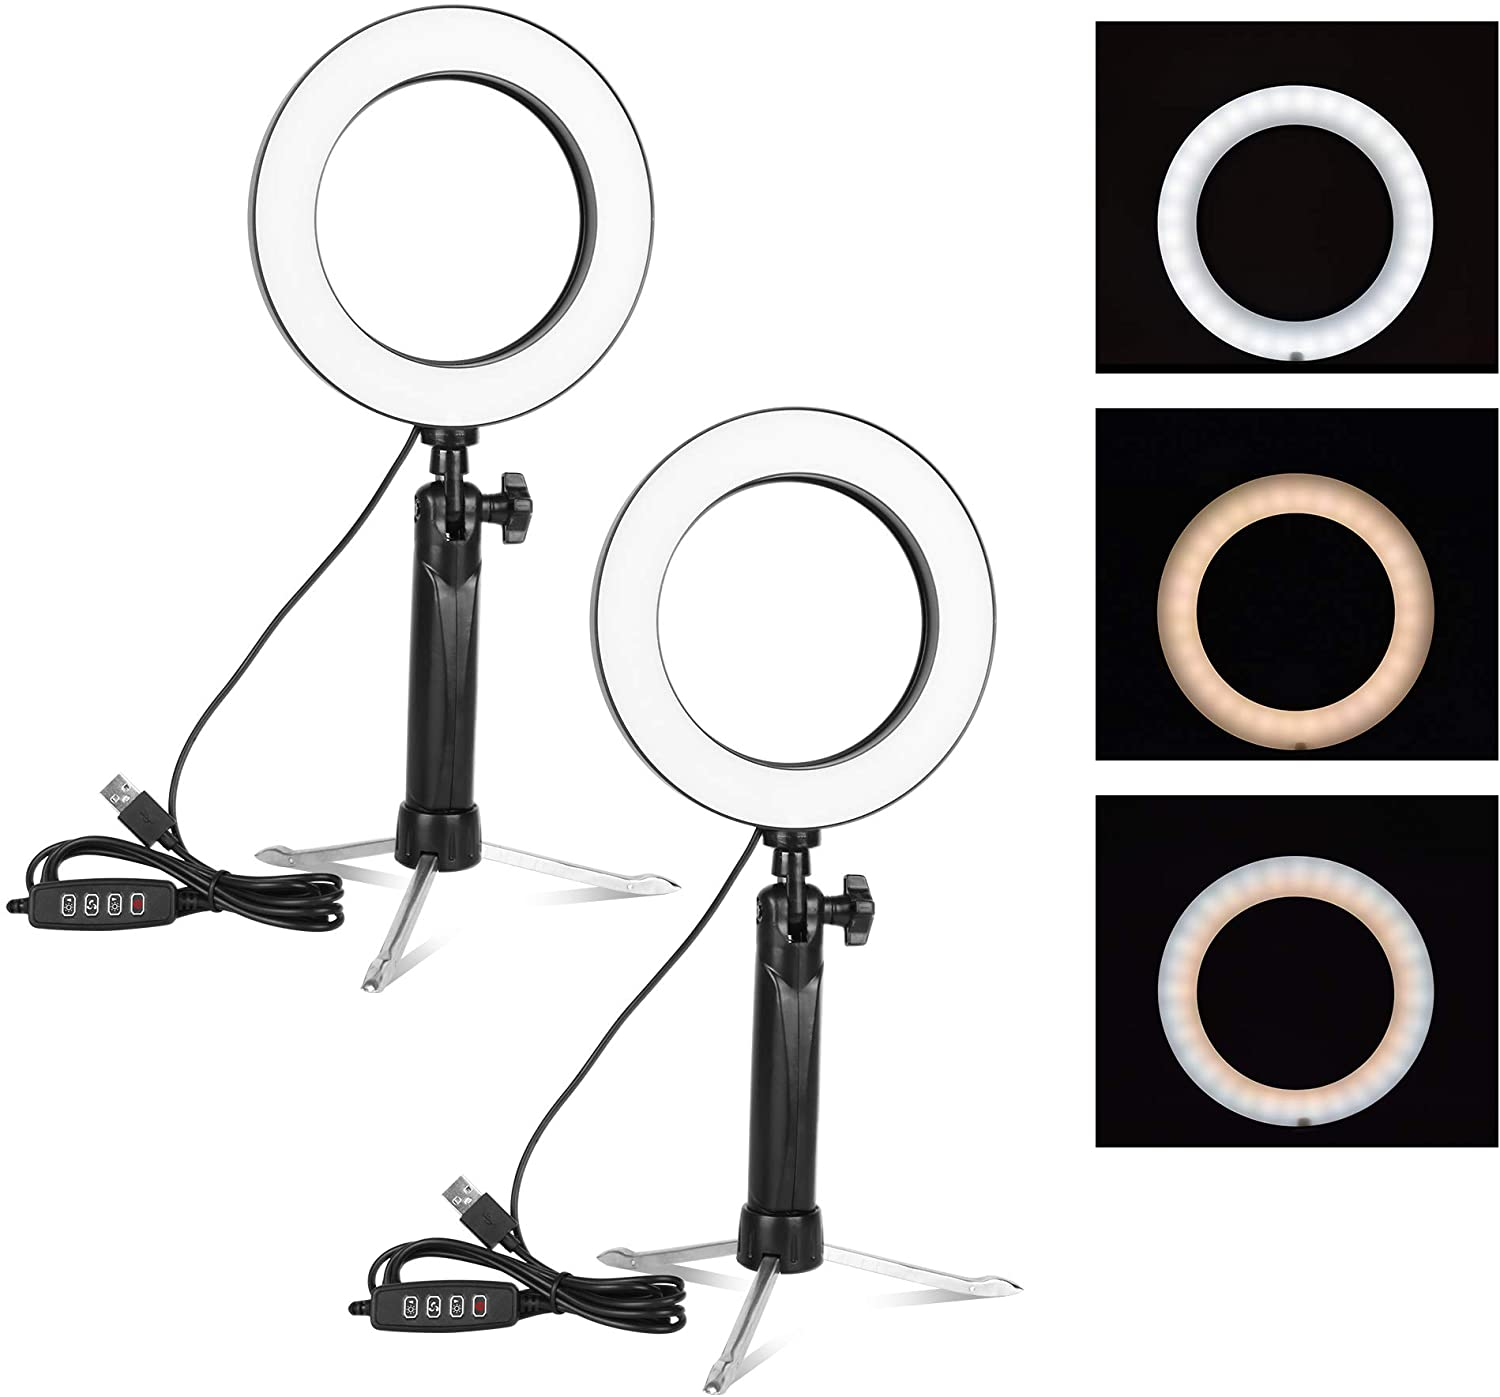 Emart 6'' LED Ring Light with Tripod Stand, 3 Light Modes & 11 Brightness Level Photography Continuous Portable Lighting Kit for Table Top Photo Video Studio - 2 Sets